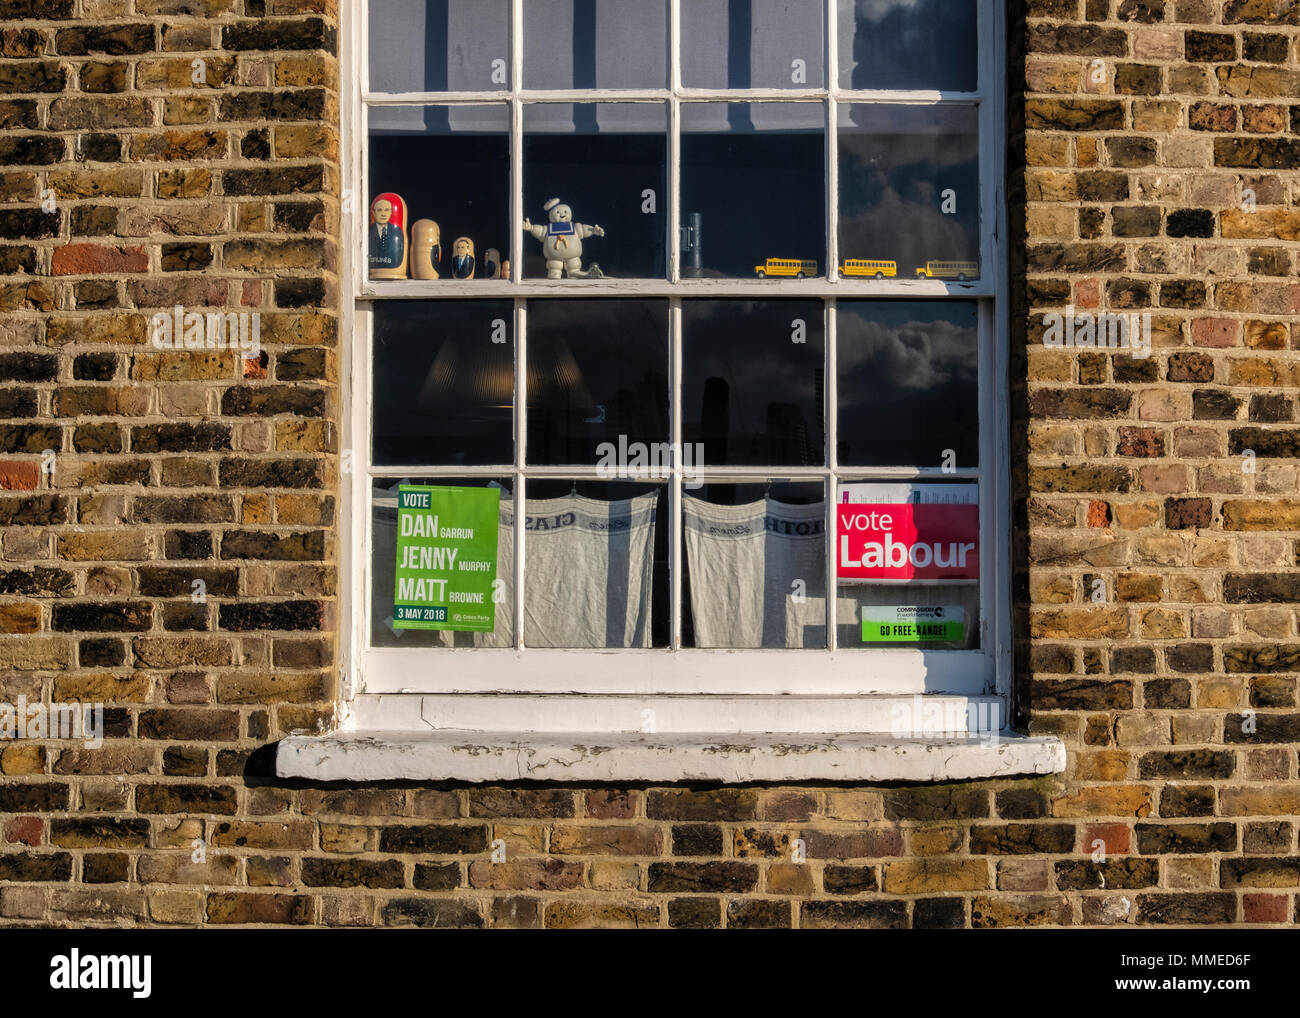 London Greenwich. Election posters for Labour Party & Green Party and ornaments in window of suburban home - Stock Image